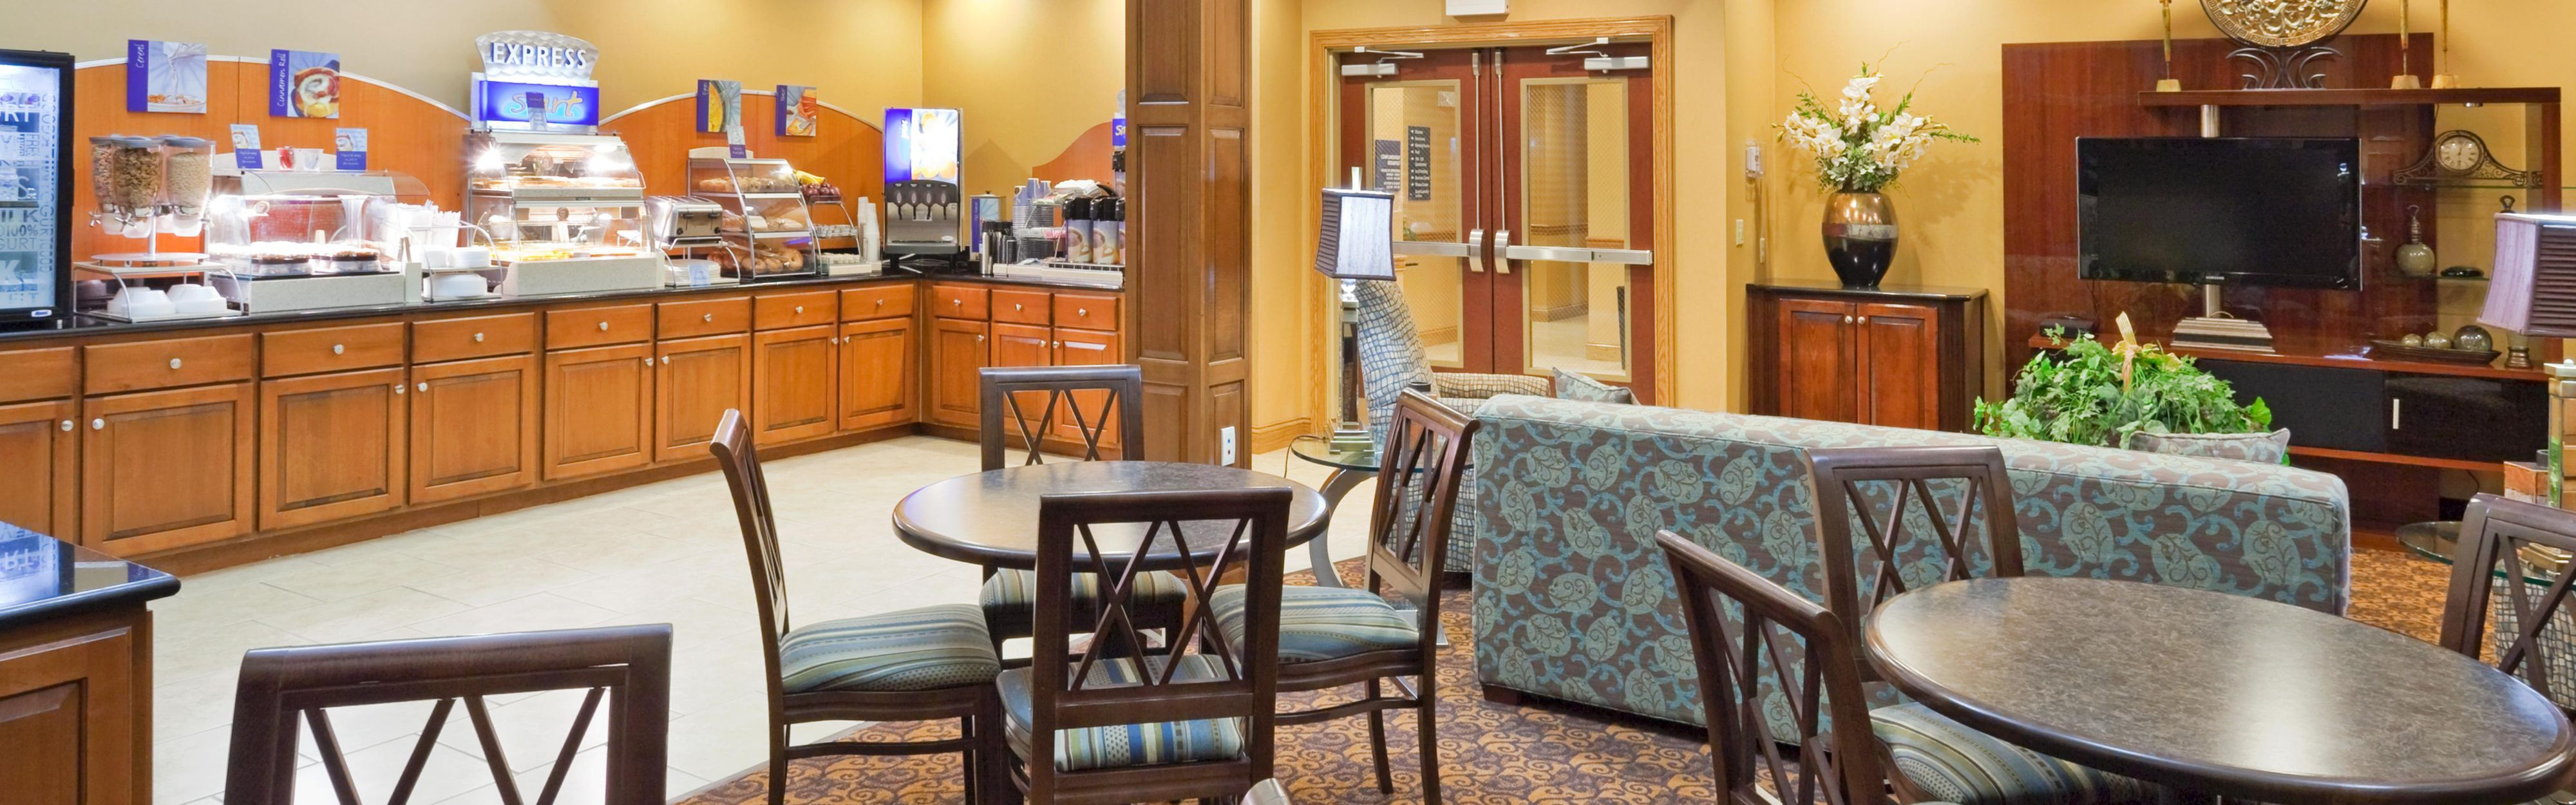 Holiday Inn Express & Suites Somerset Central image 3